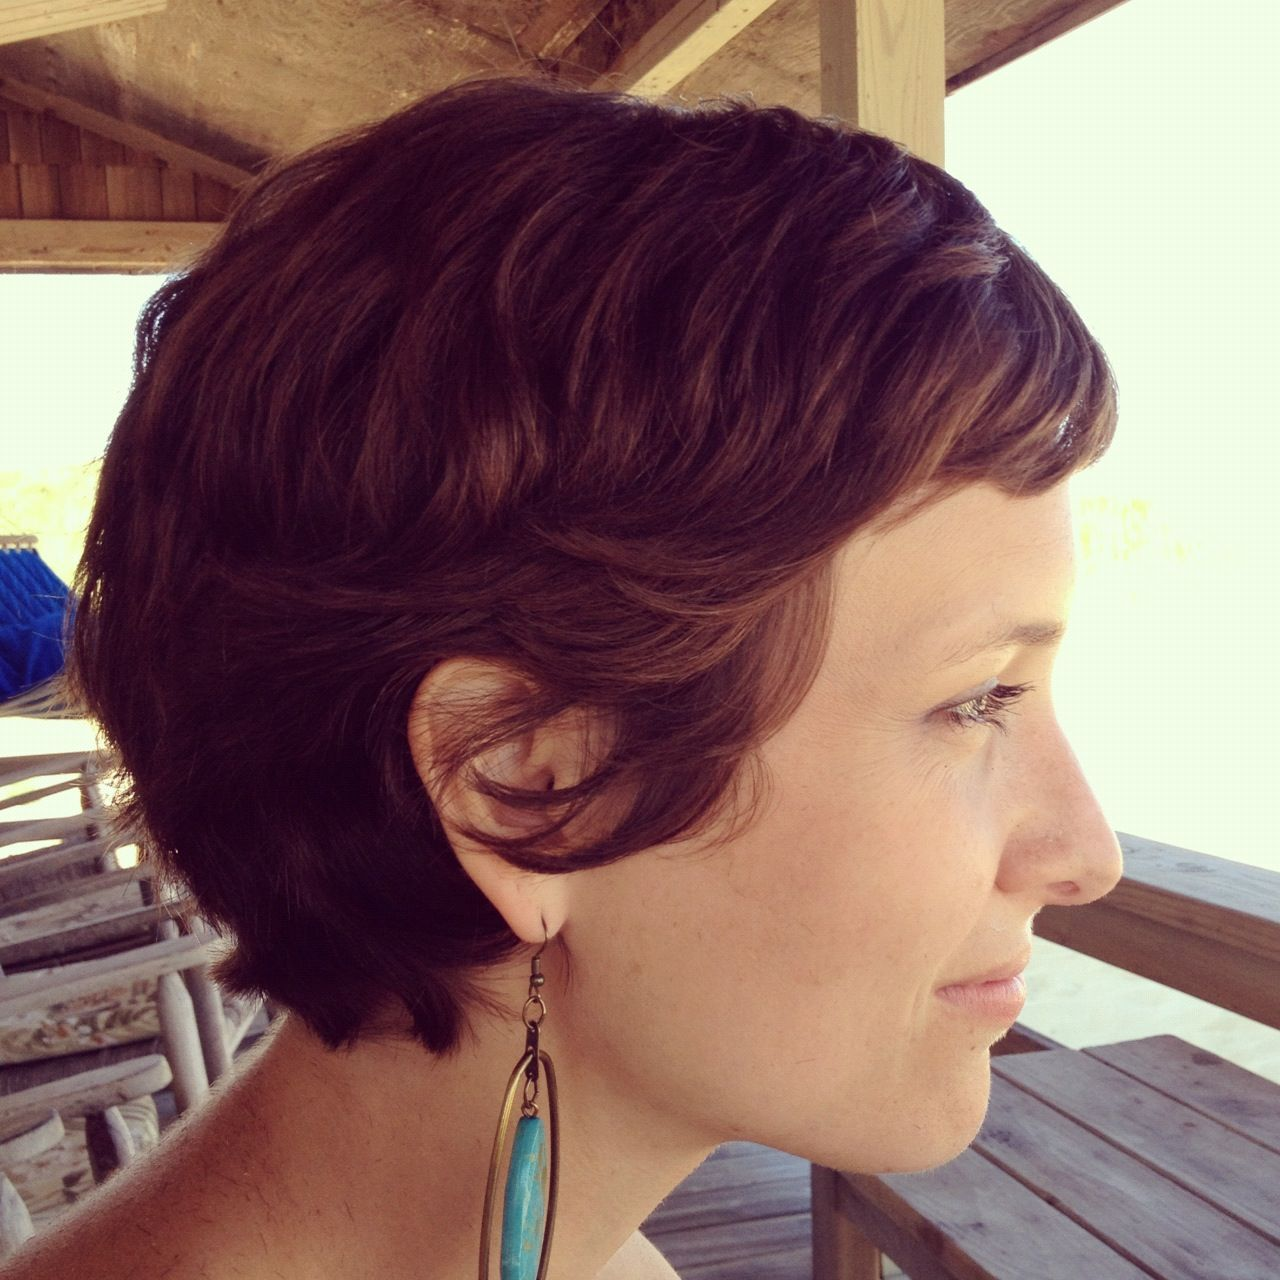 how to cut a pixie haircut yourself how to cut a pixie haircut yourself hair 2335